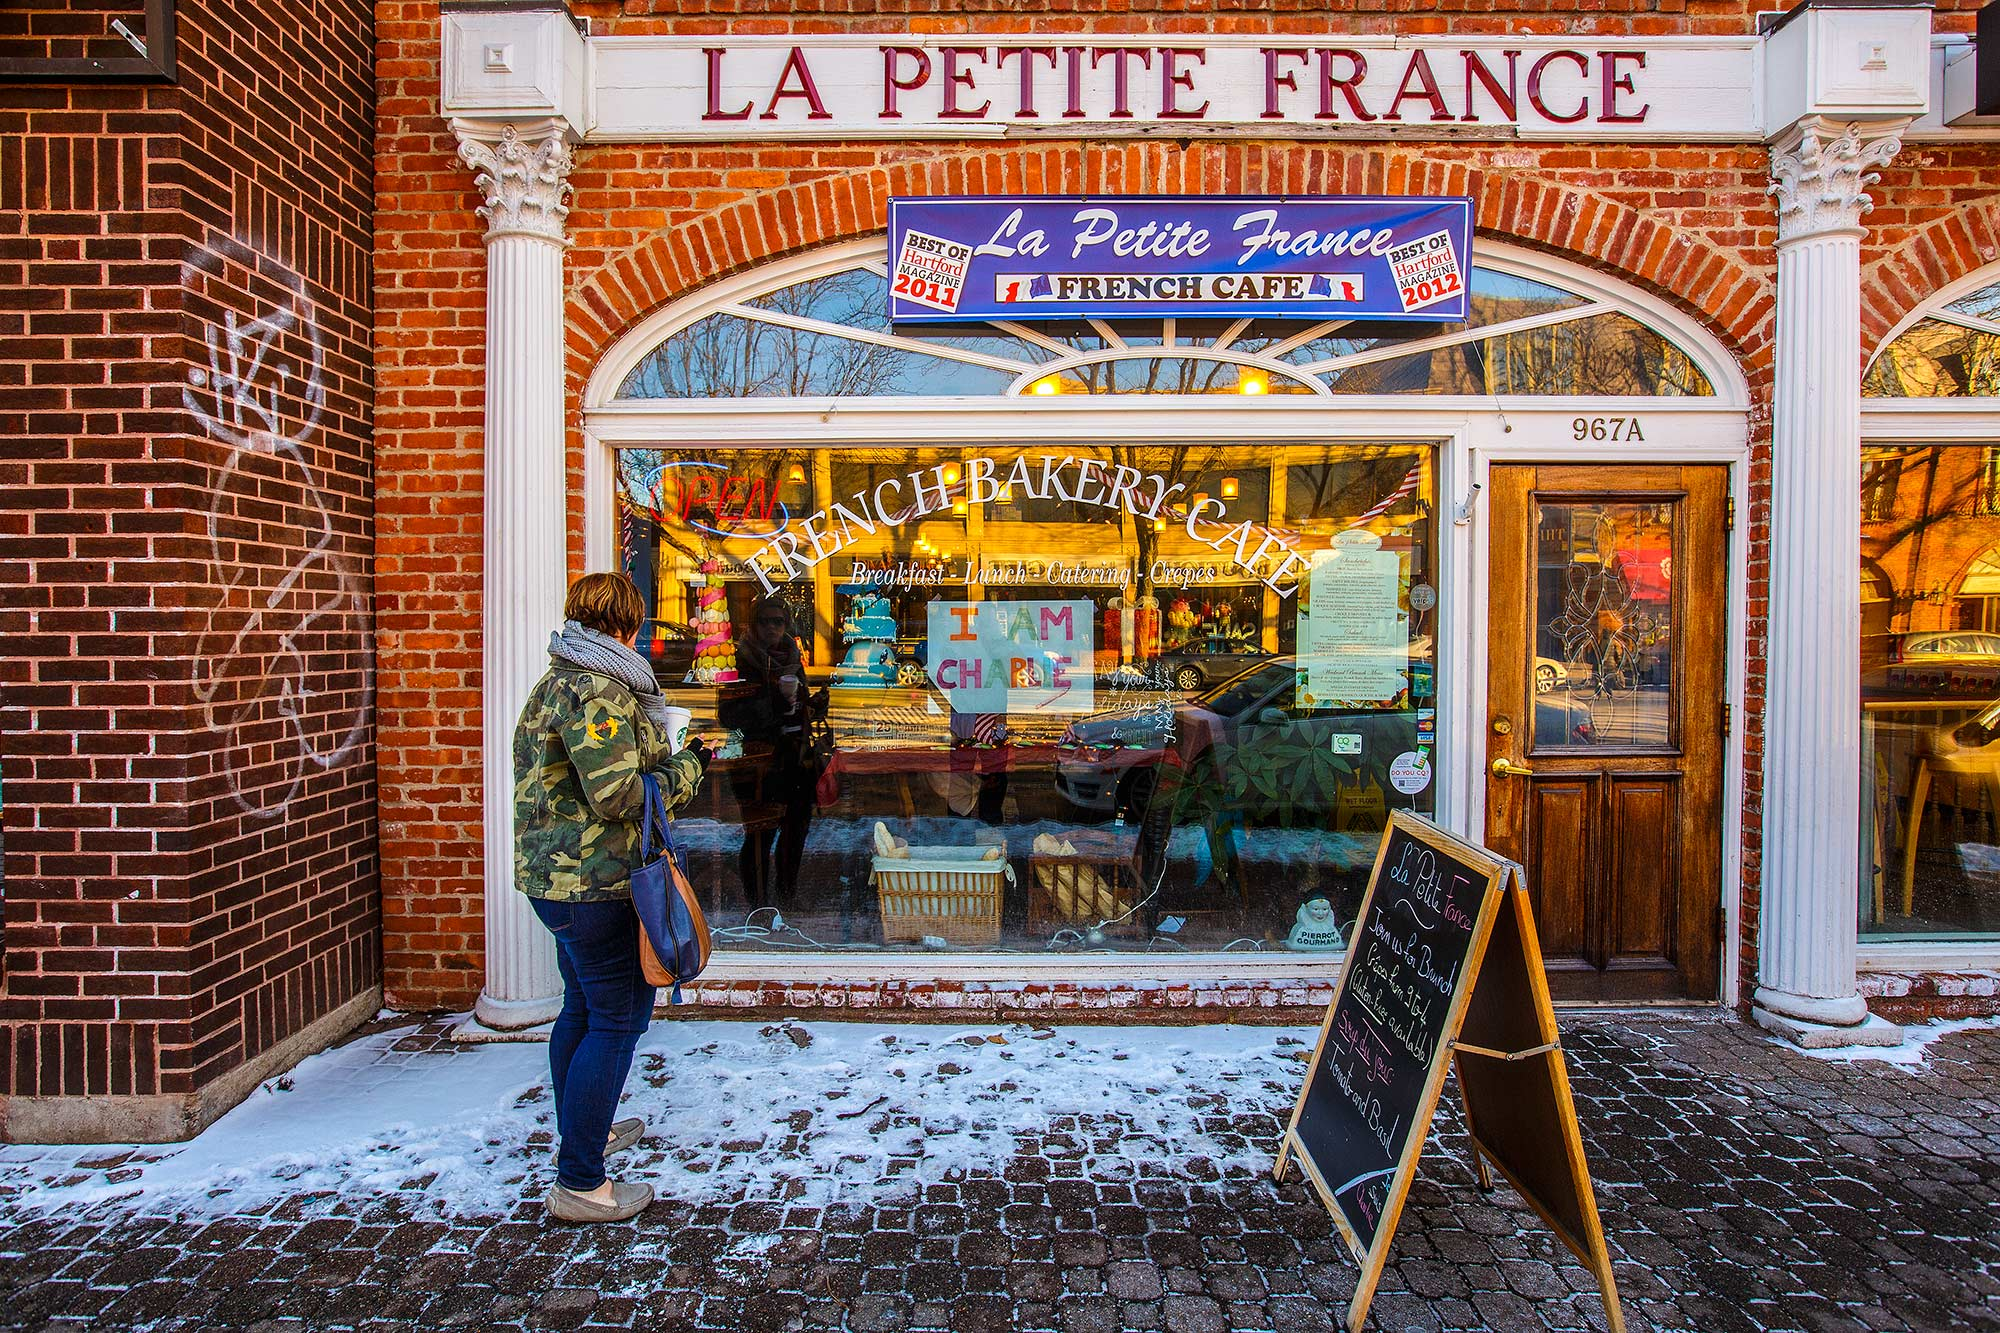 Le Petite France, West Hartford, CT - 1/10/15